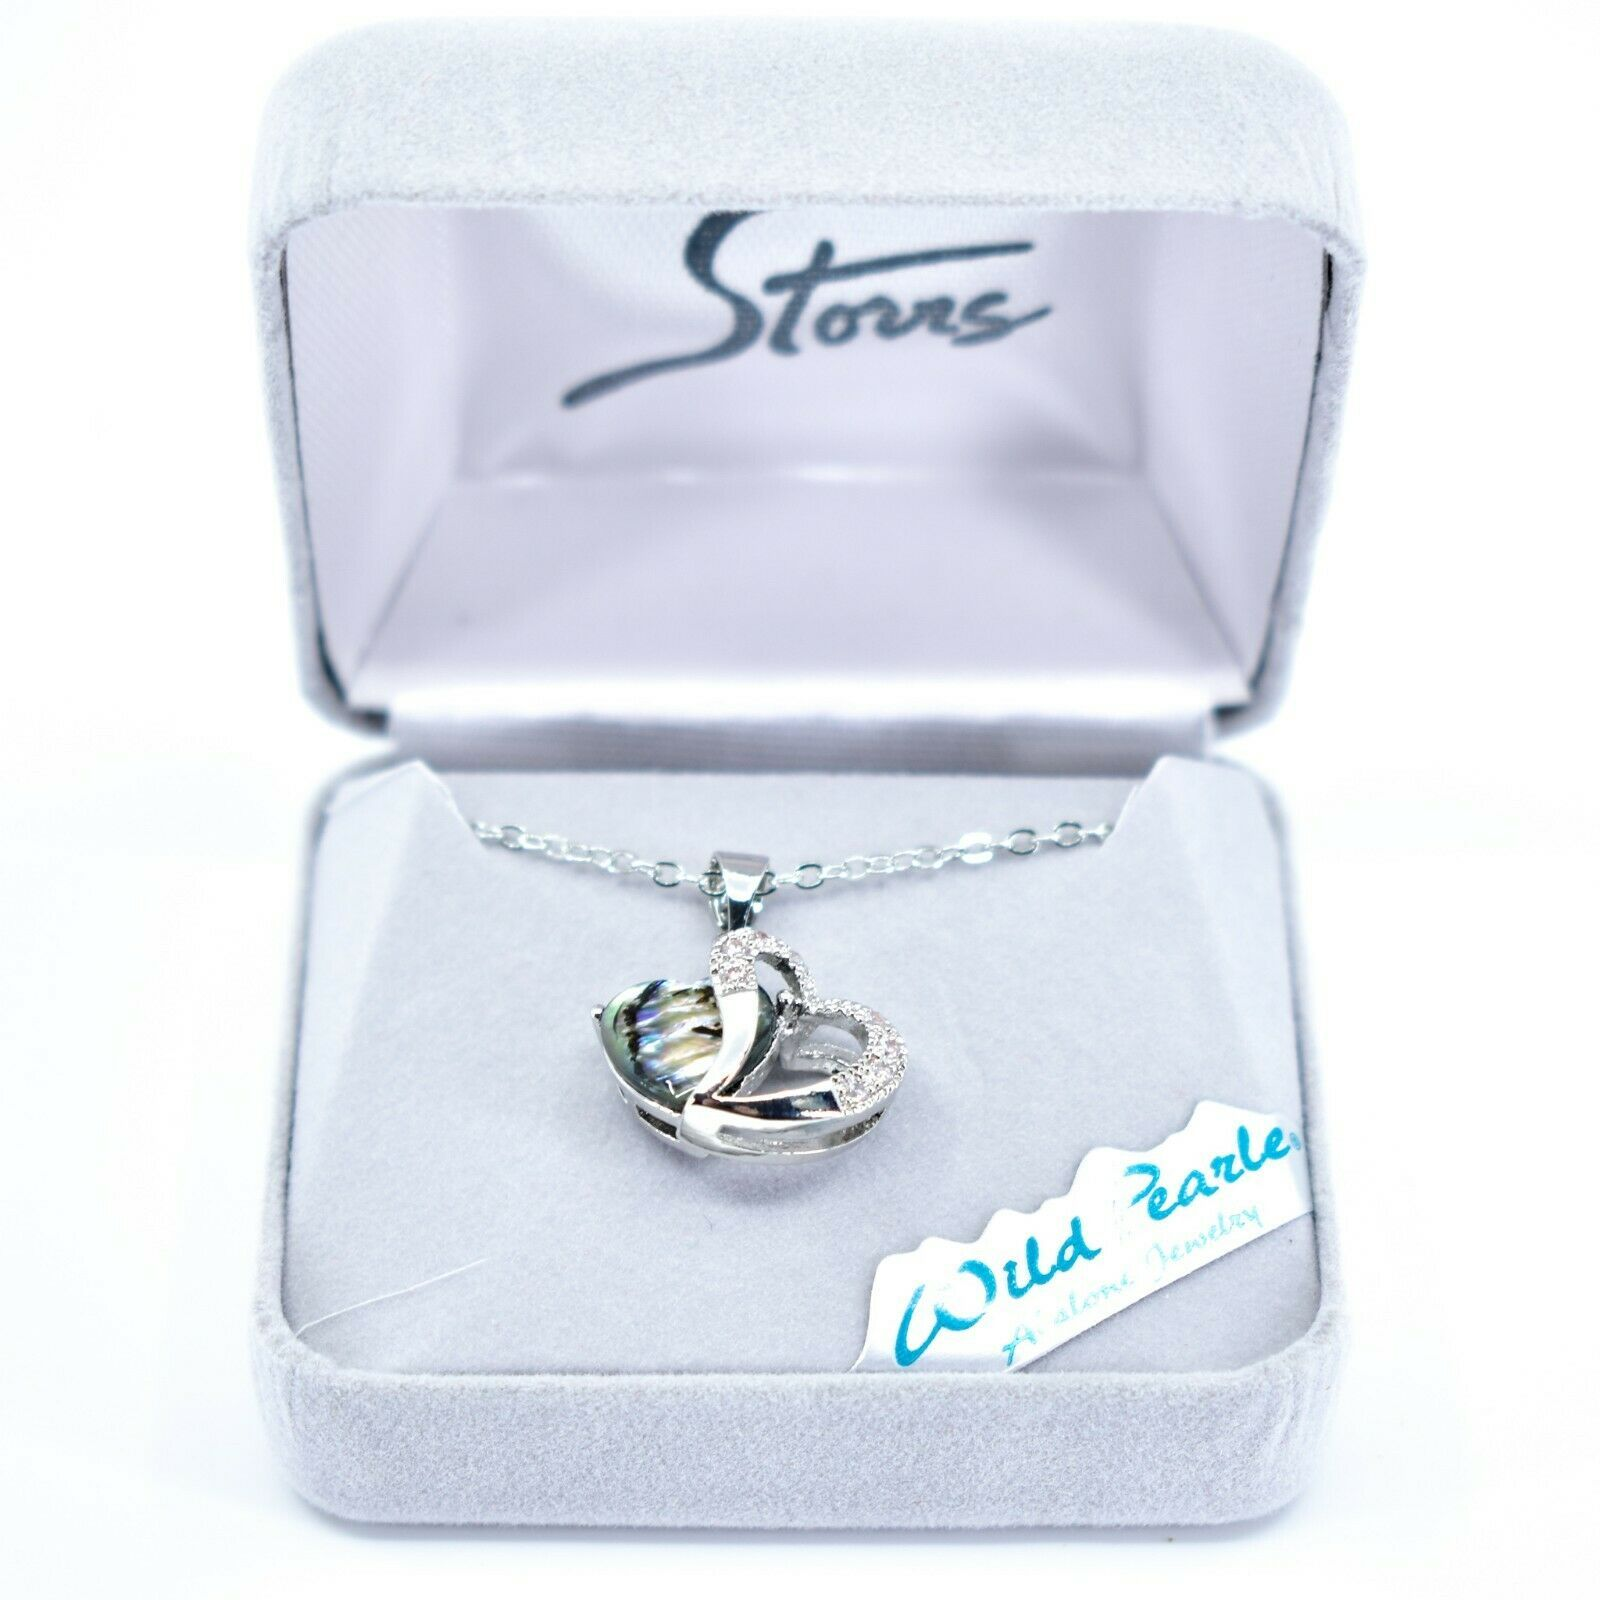 Storrs Wild Pearle Abalone Shell 2 Hearts 3D Love Pendant Silver Tone Necklace